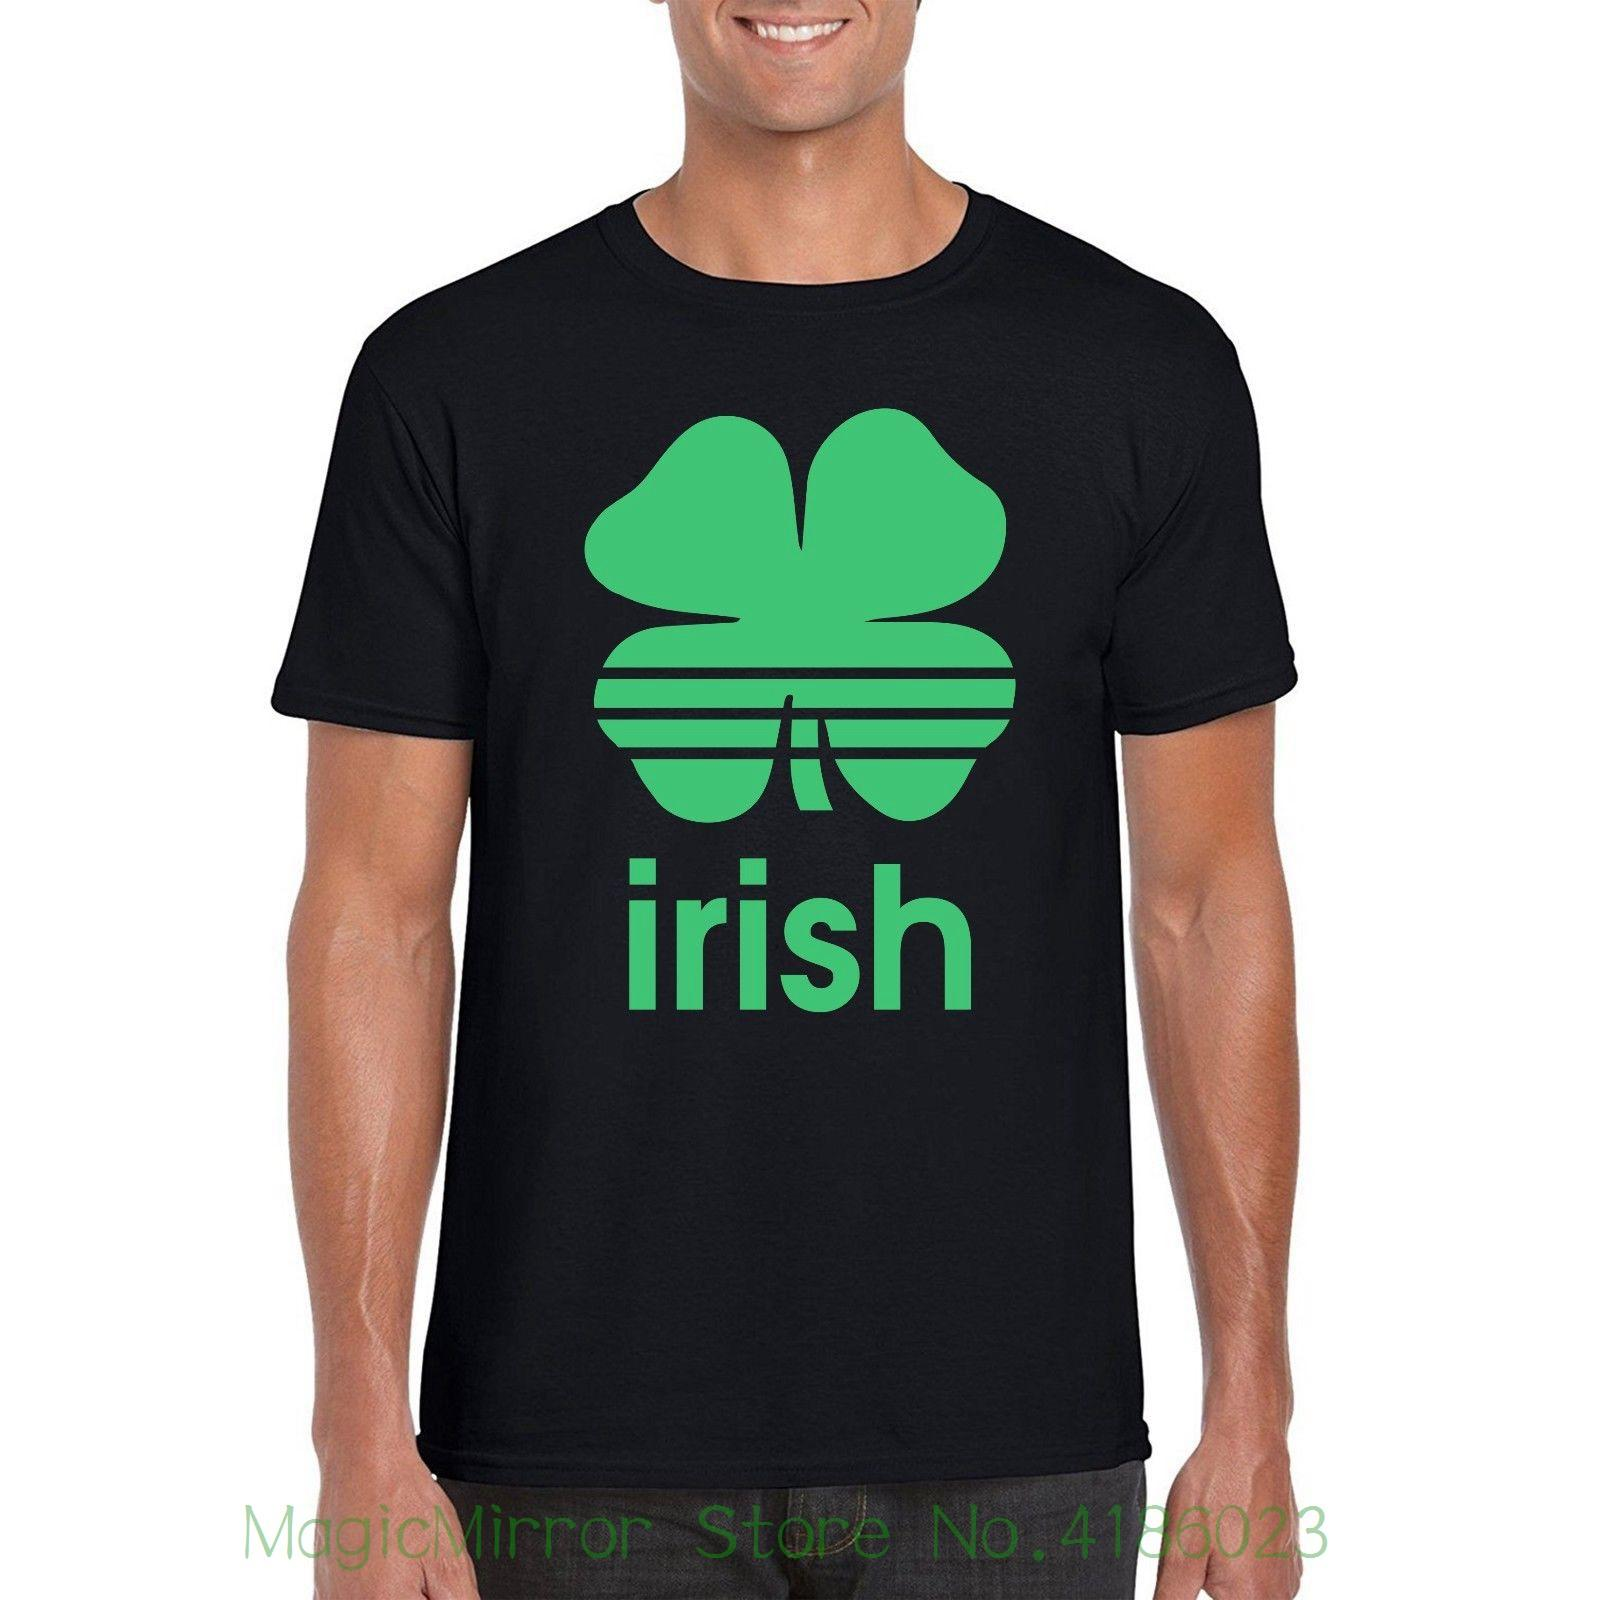 61ab4b65 St. Patrick's Day T-shirt , Ireland Shamrock , St Paddy's Day , Irish Pride  Tee Top Fashion New Top Tees Tshirts